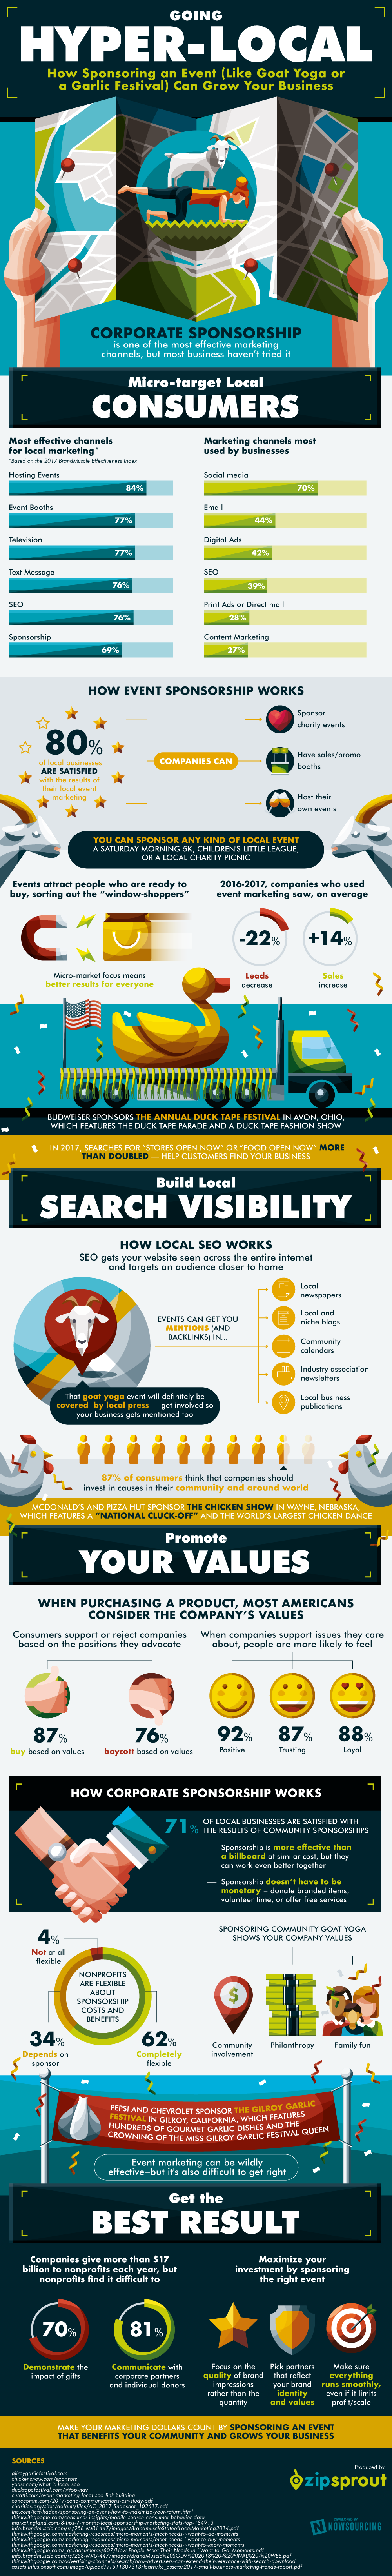 Why Hyper-local Marketing Works